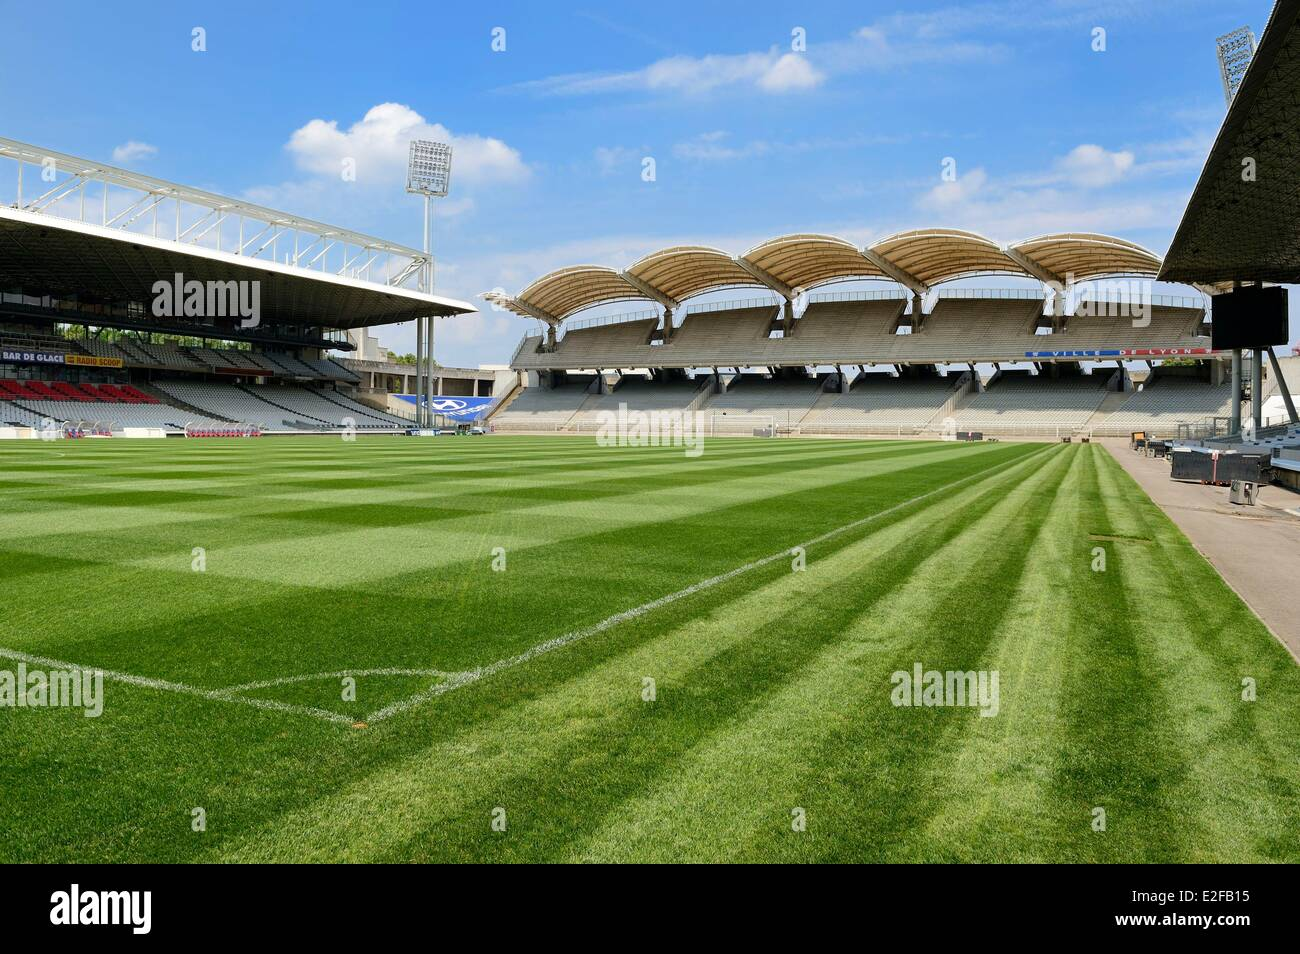 France, Rhone, Lyon, the Gerland stadium from the architect Tony Garnier Stock Photo